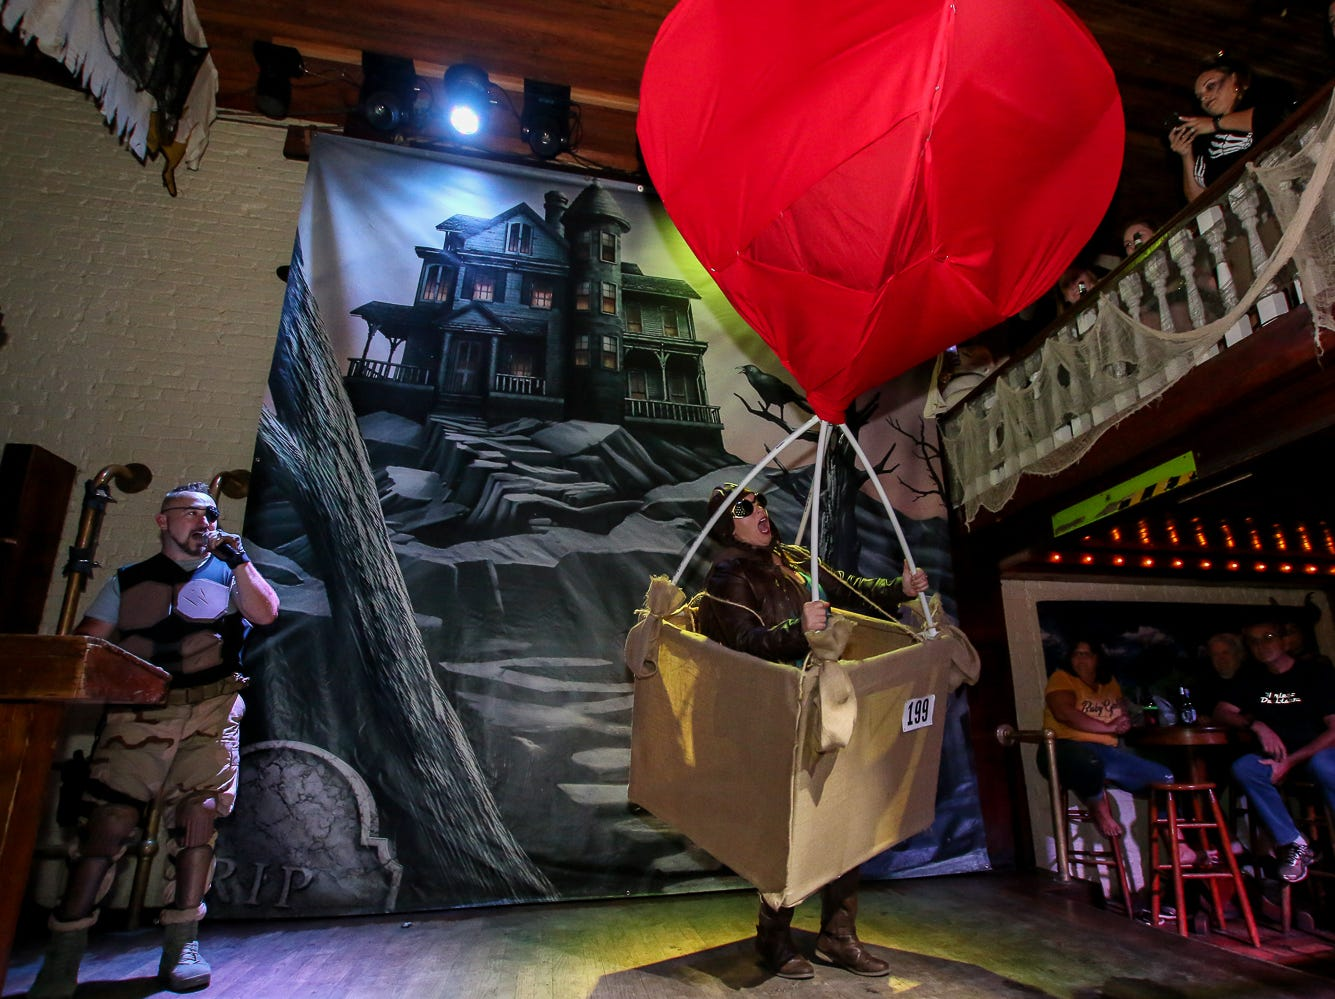 """Hot air balloon"" won 4th place in the $1,000 grand prize Halloween costume contest, which featured over 100 entrants, at Seville Quarter on Wednesday, October 31, 2018."